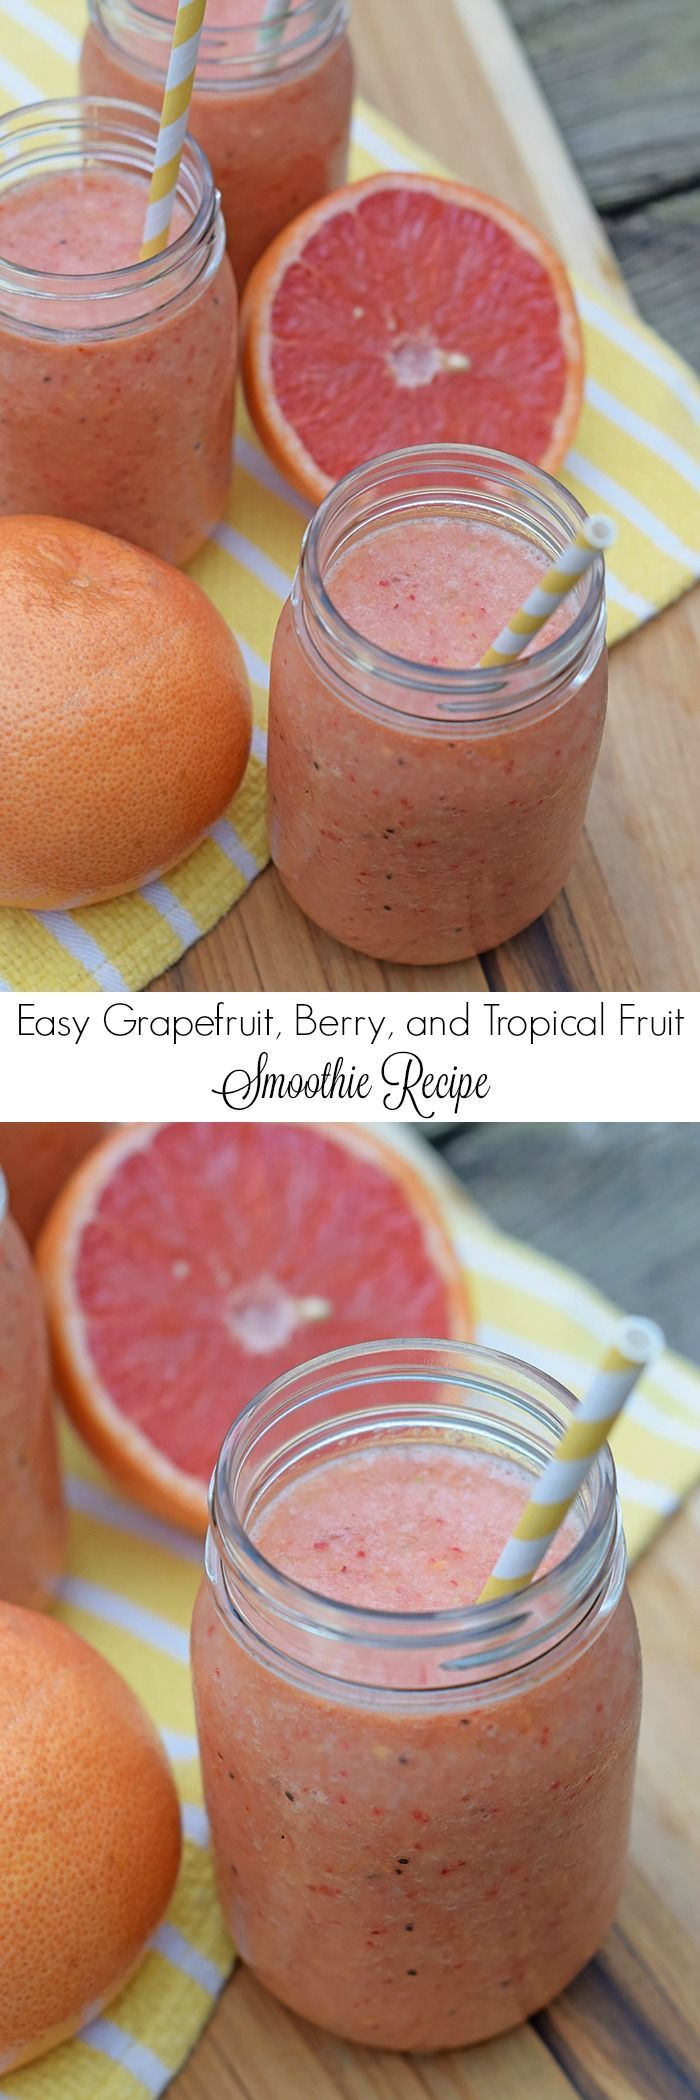 How to make a simple, easy, natural fruit smoothie, no sugar added. All you need is fruit and ice for a refreshing Grapefruit, Berry, and Tropical Fruit Smoothie. Printable recipe! | ad